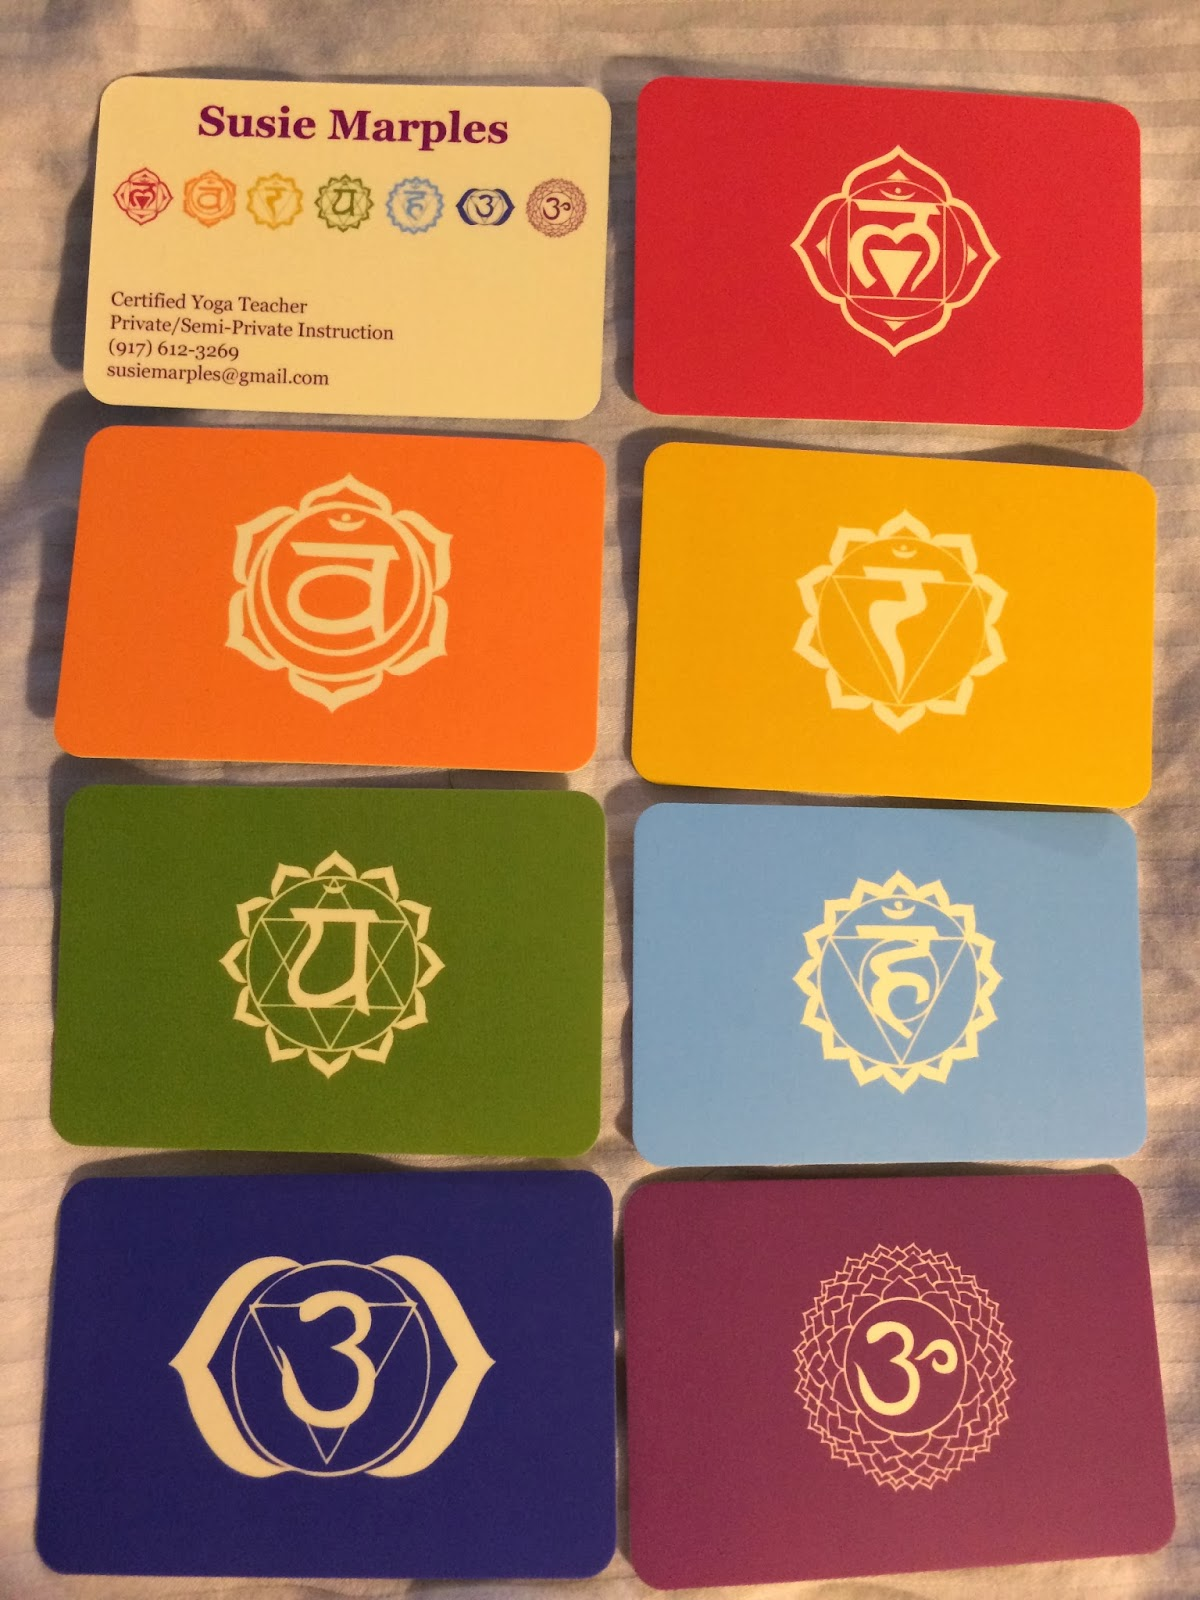 Business Cards For Yoga Teachers Gallery - Card Design And Card ...